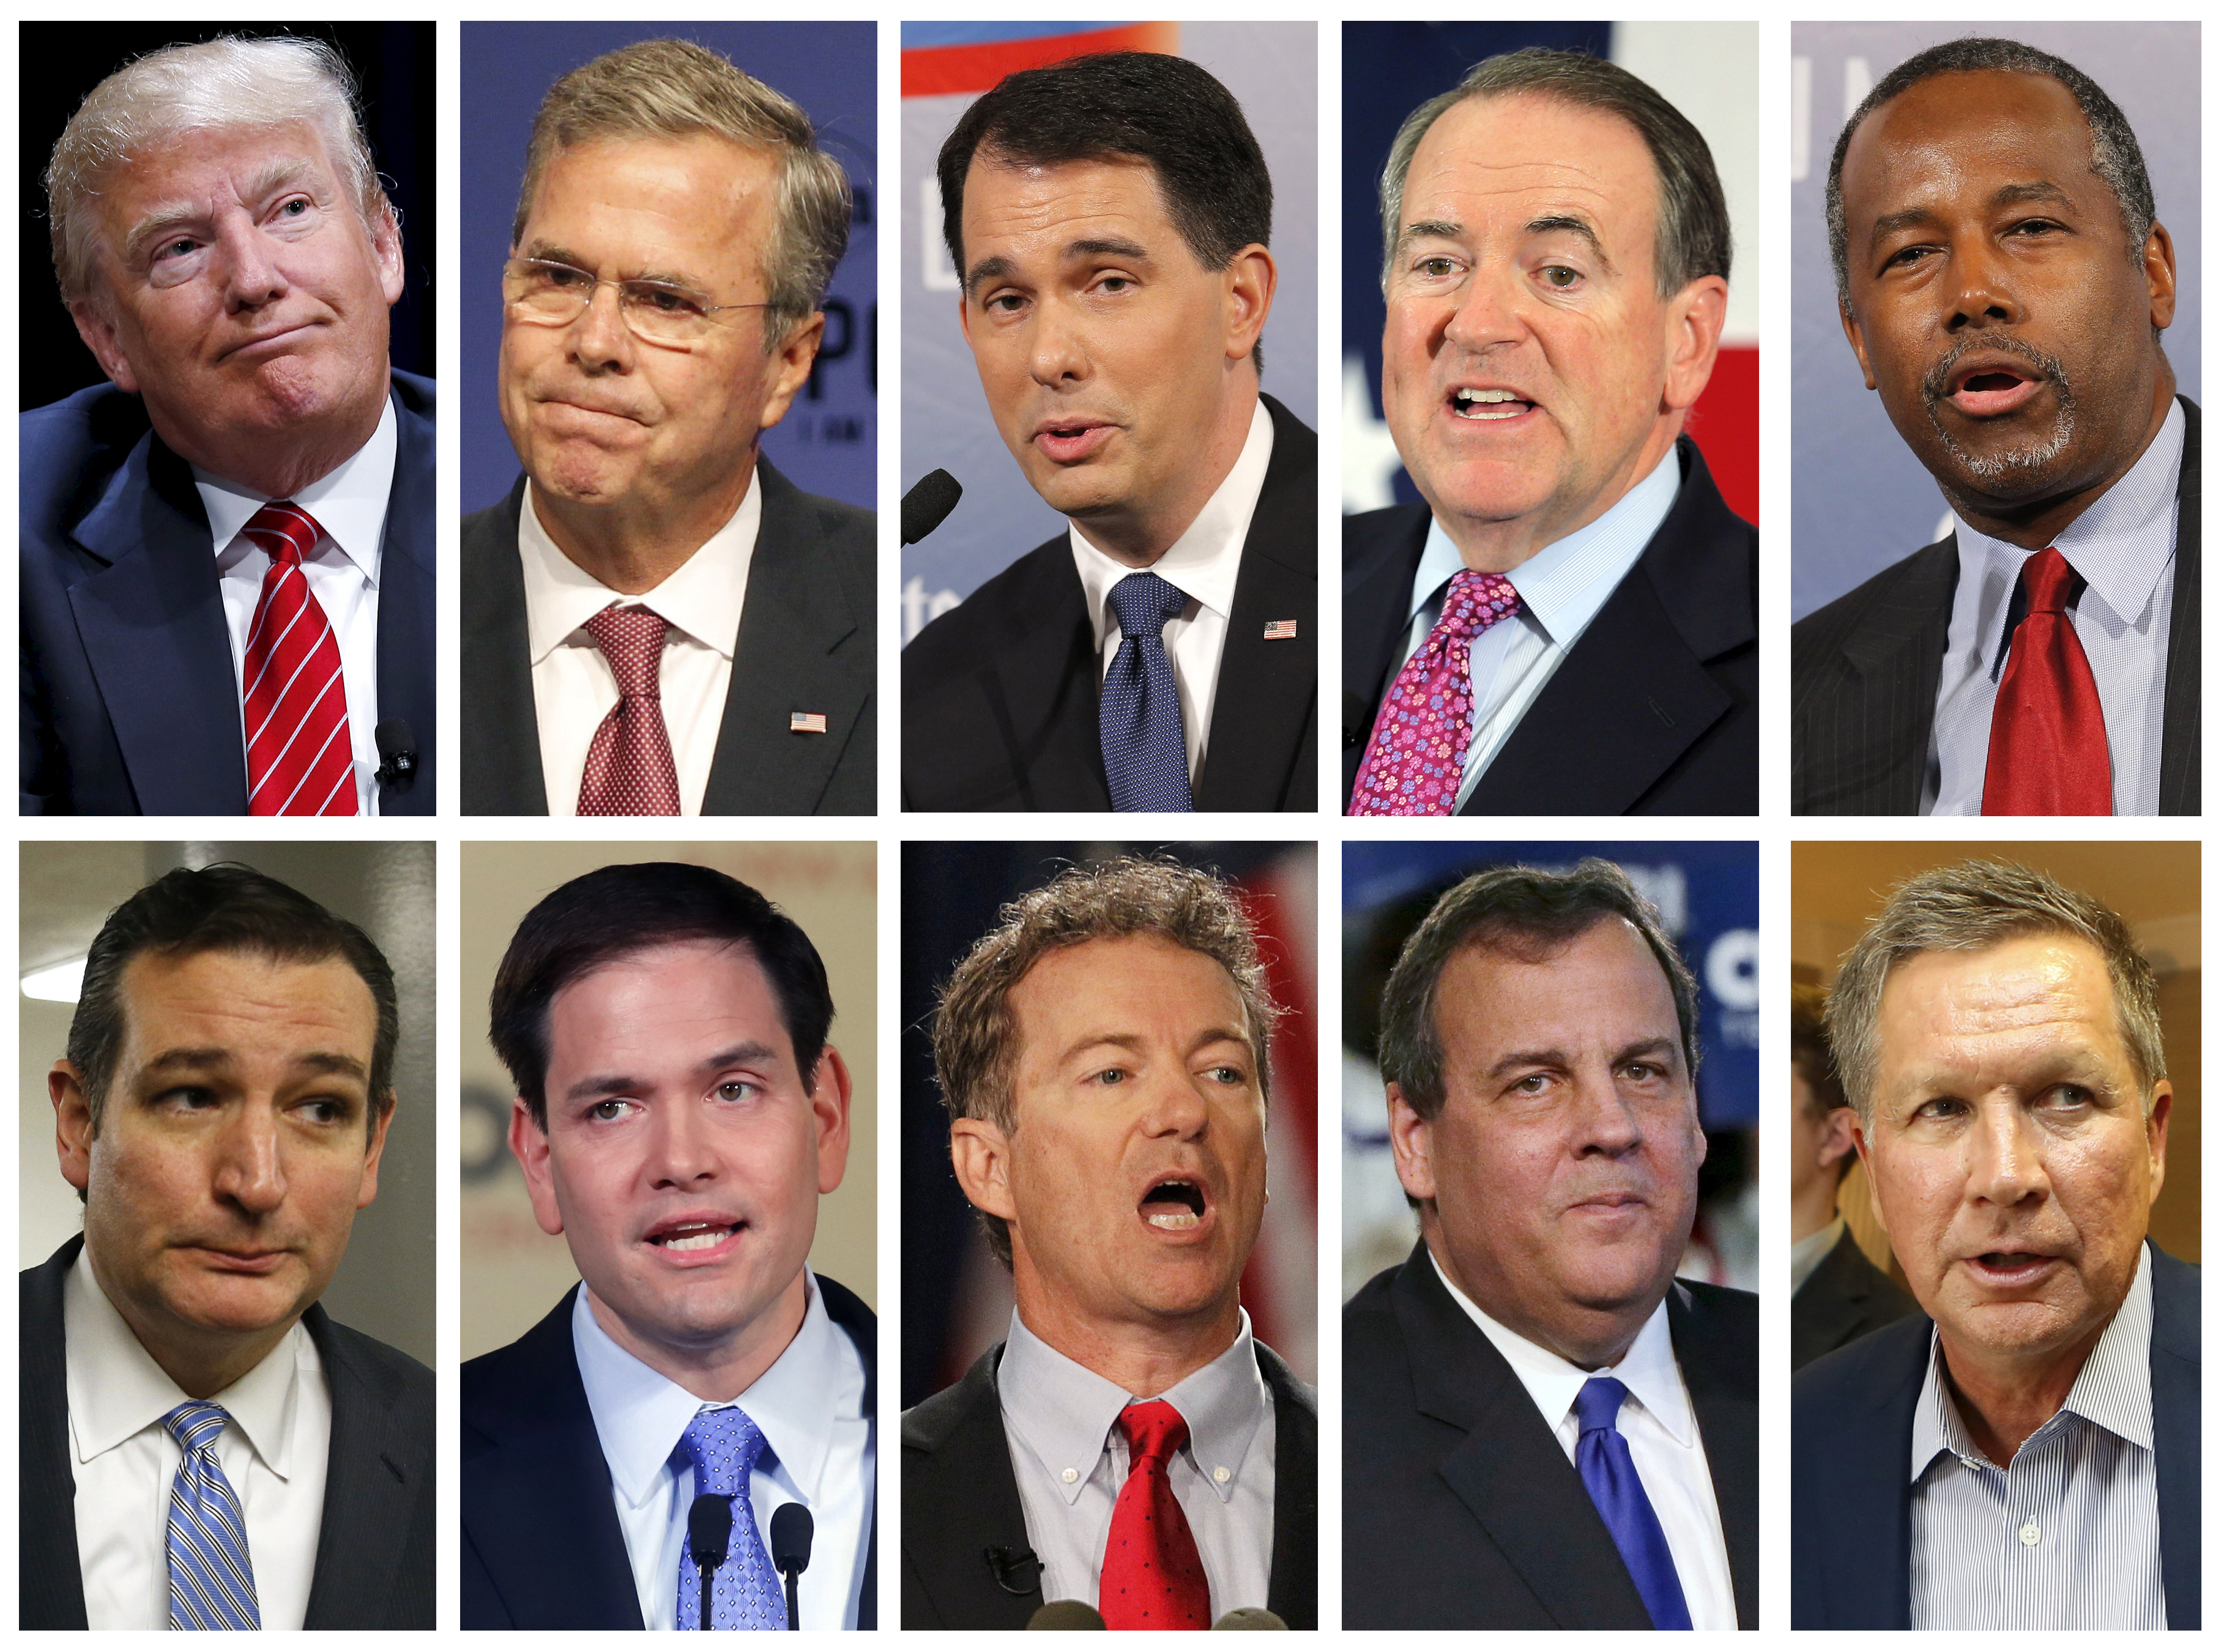 four rules for the gop debate participants to follow